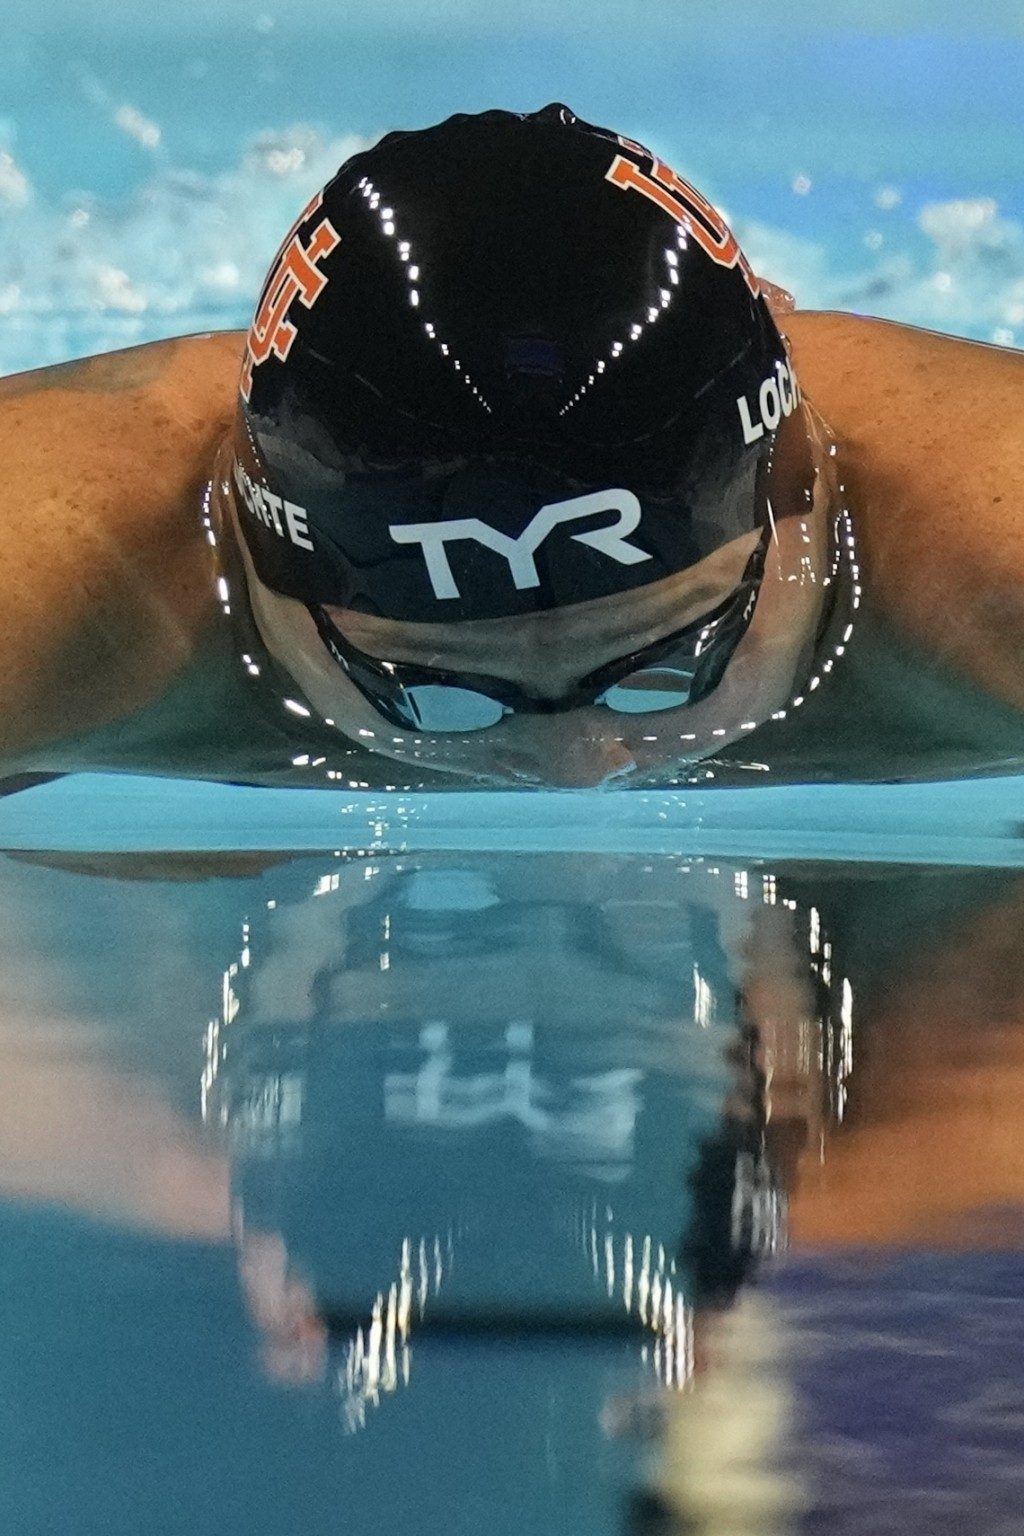 Ryan Lochte participates in the men's 200 Individual Medley during wave 2 of the U.S. Olympic Swim Trials on Thursday, June 17, 2021, in Omaha, Neb. (...